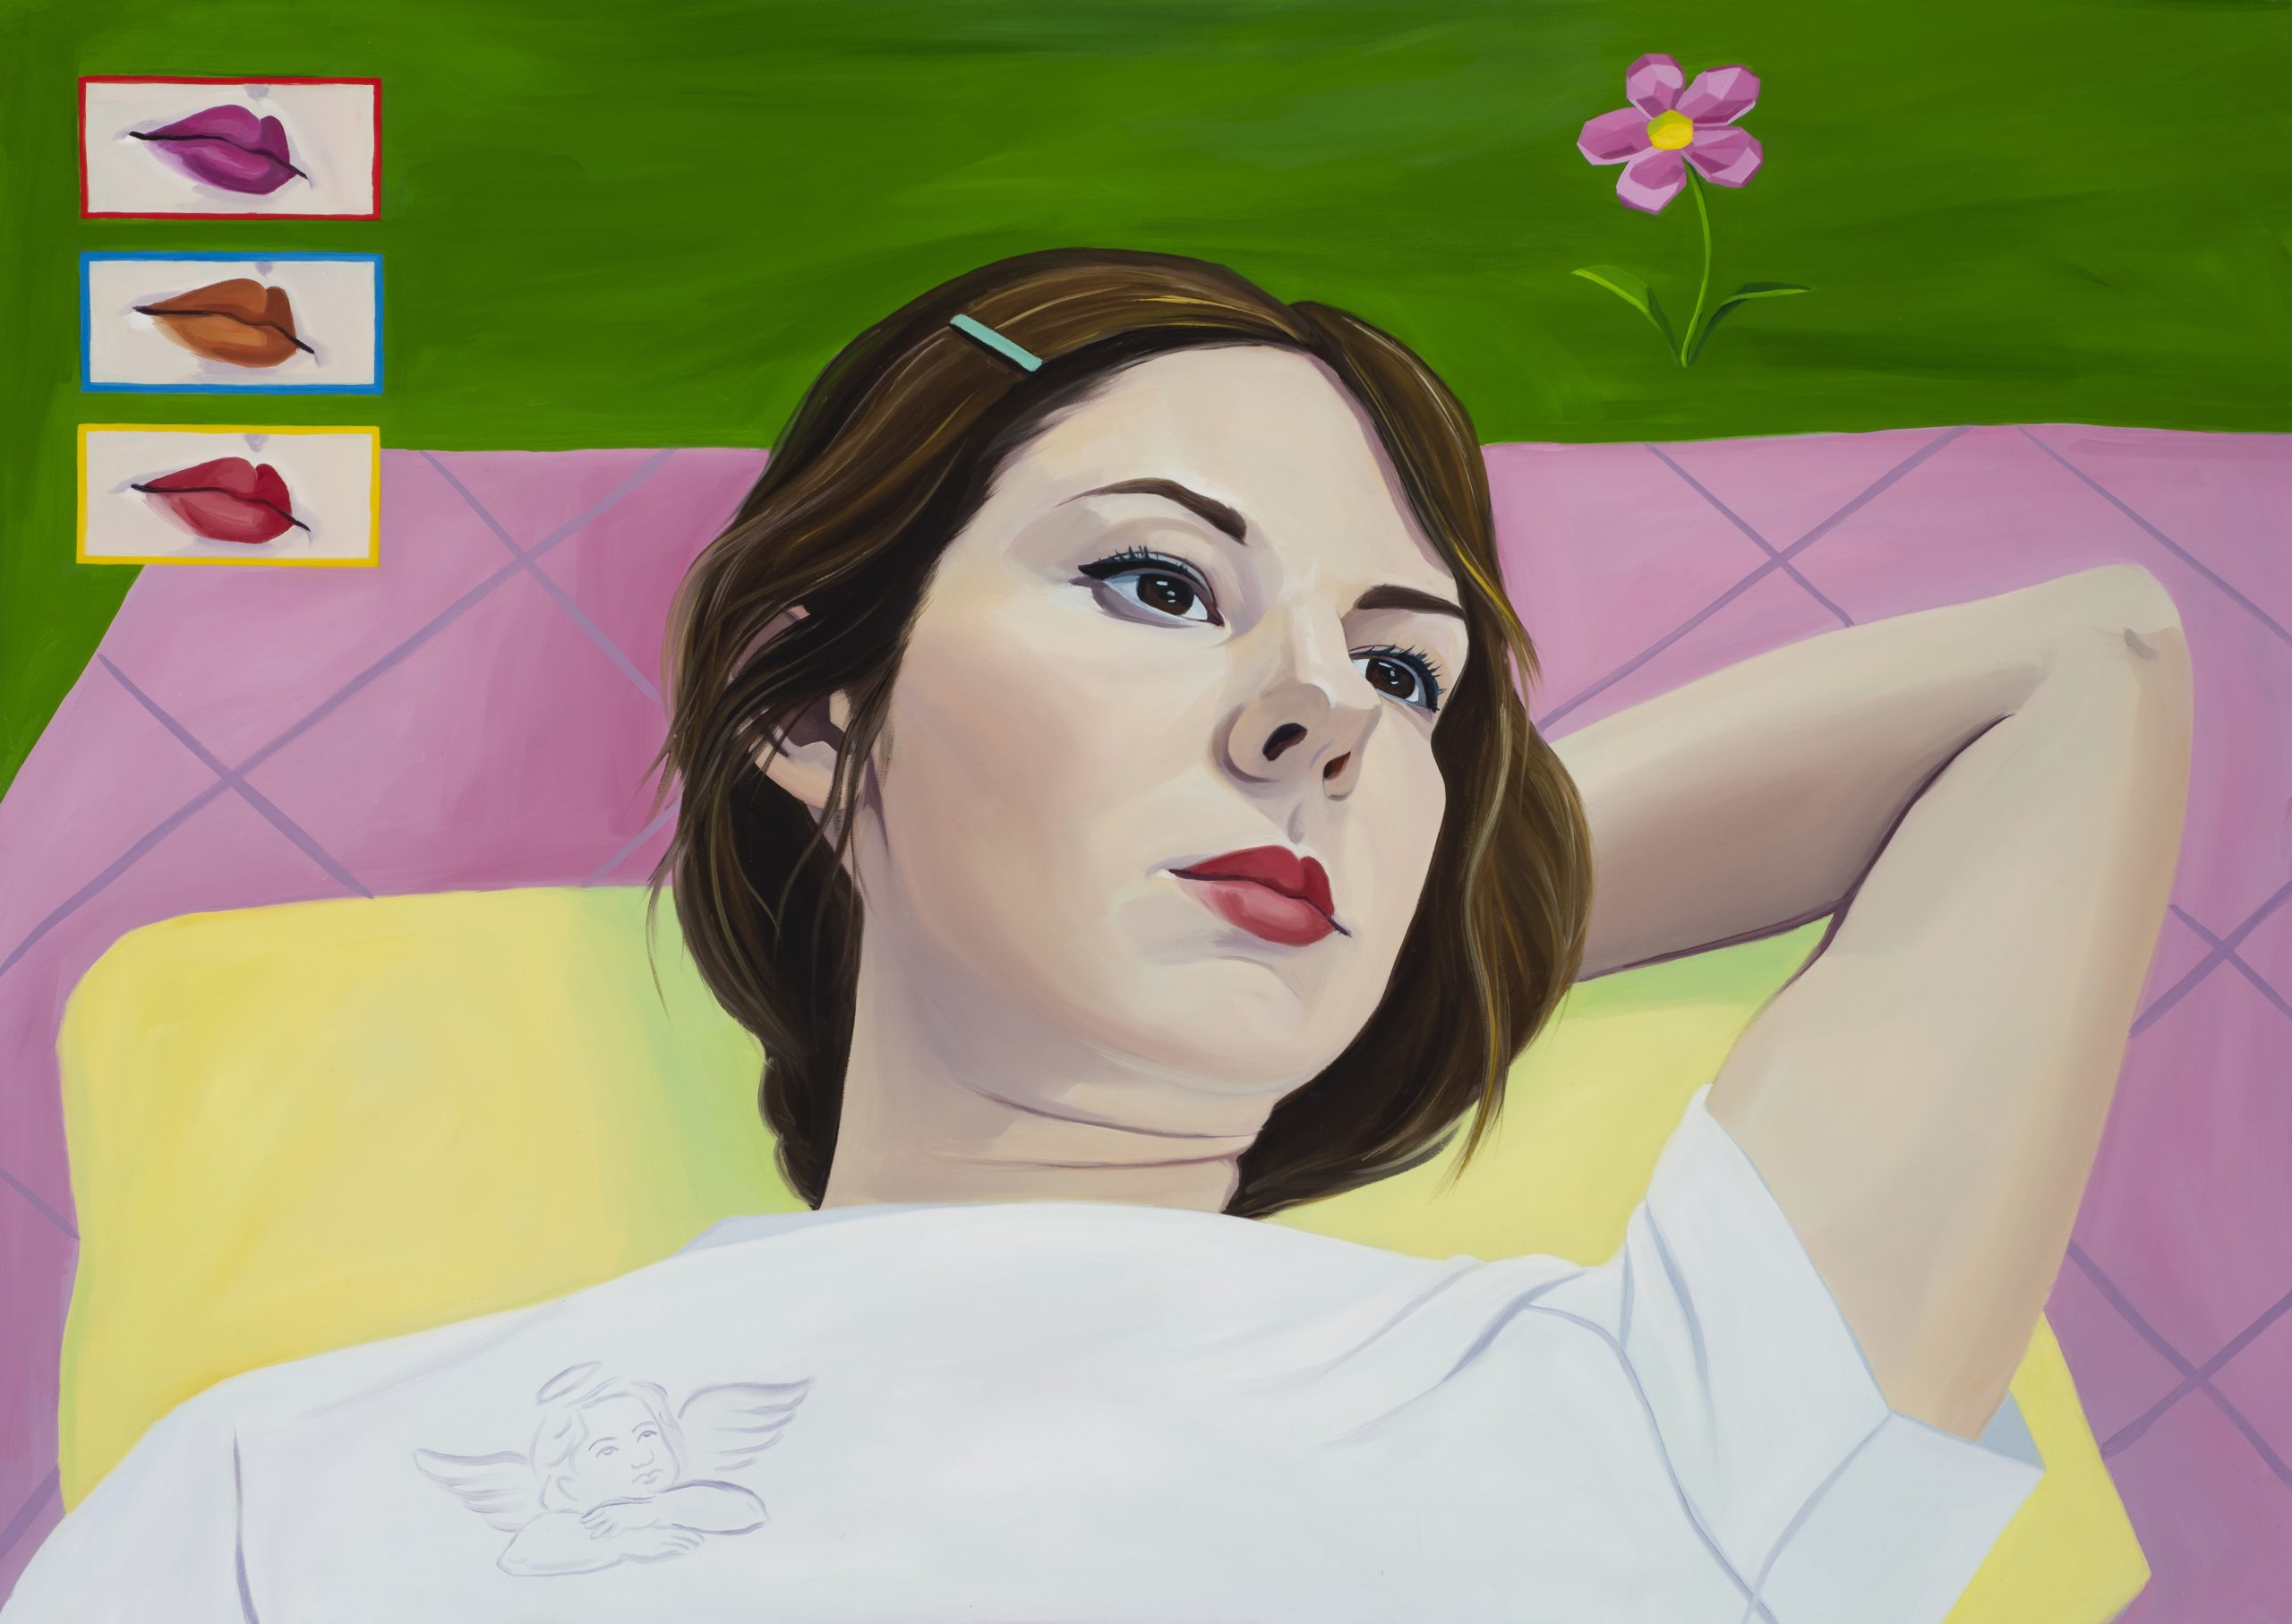 Bridgette McNab, All I need in this life of sin, 120 x 85, oil on poly cotton copy